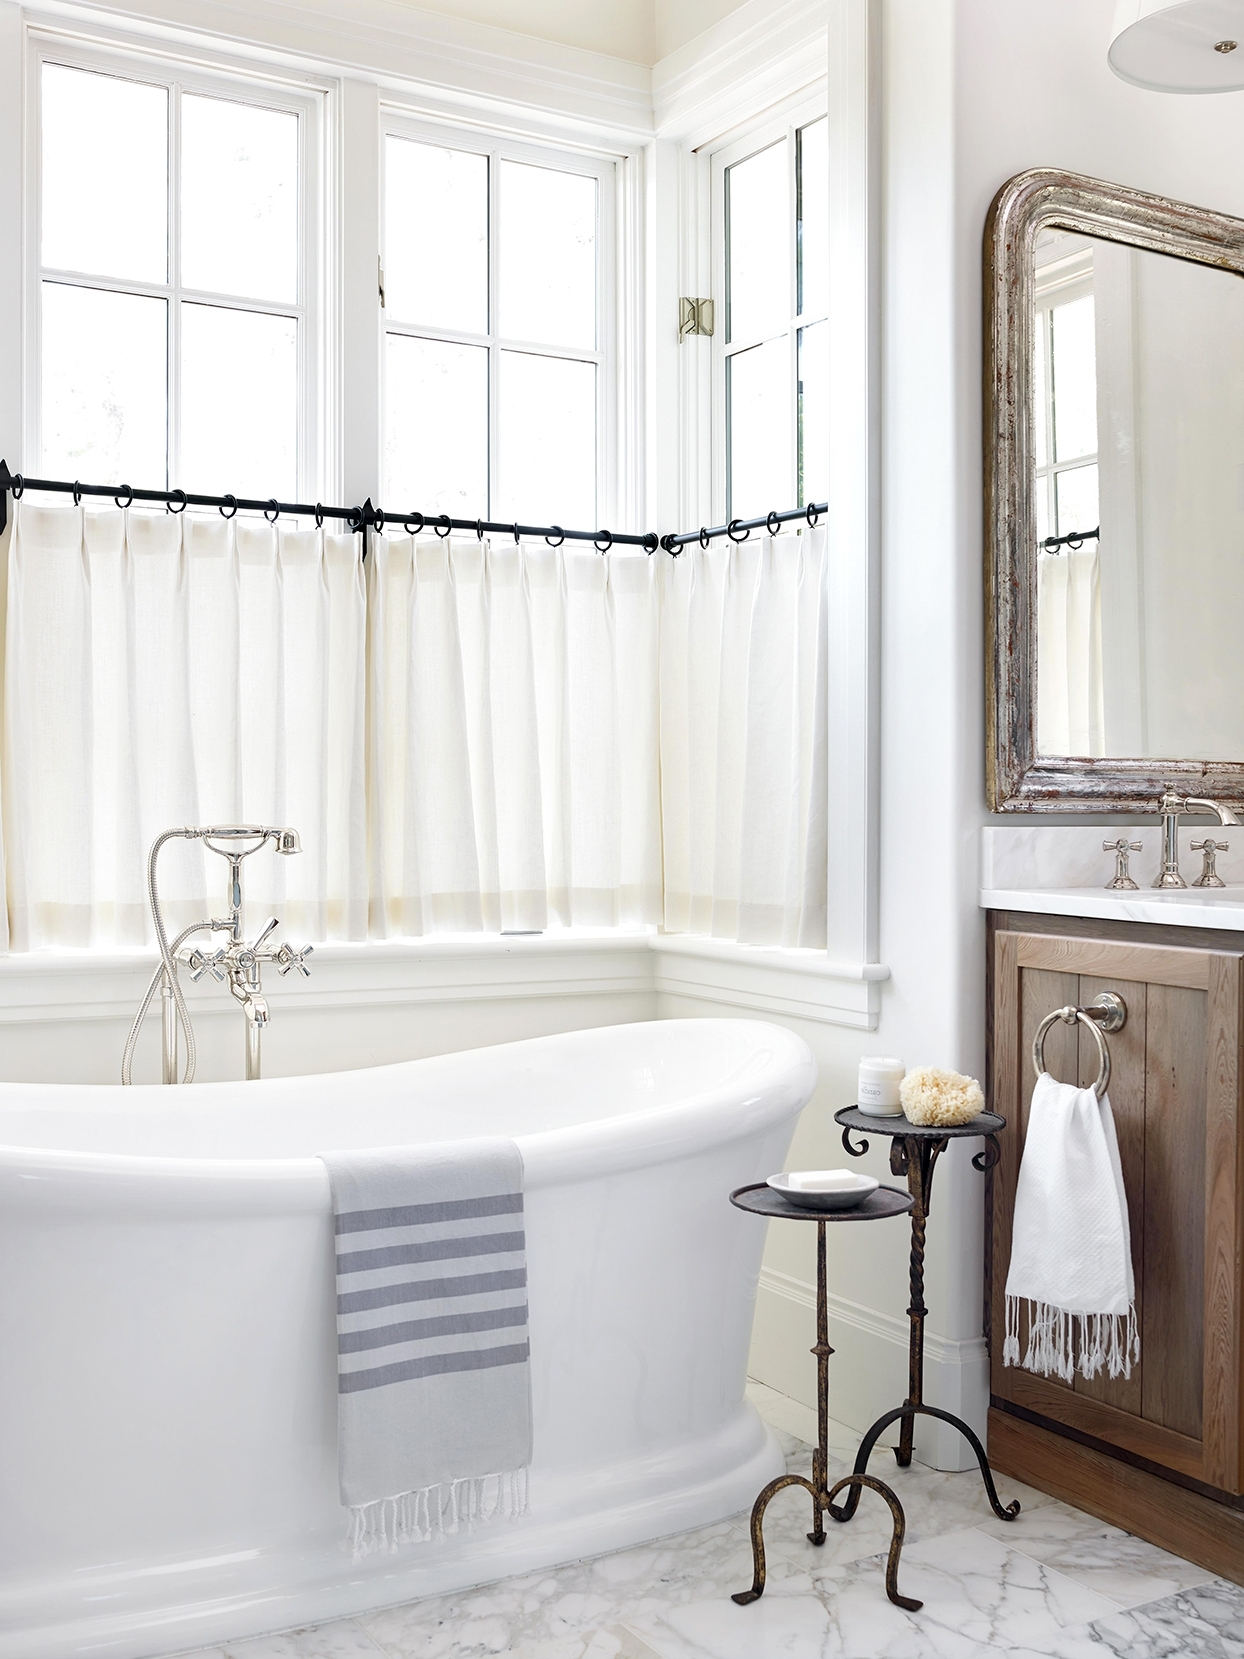 20 Bathroom Window Treatment Ideas To Dress Up Your Space 20+ Ideas For Bathroom Window Sills Inspirations